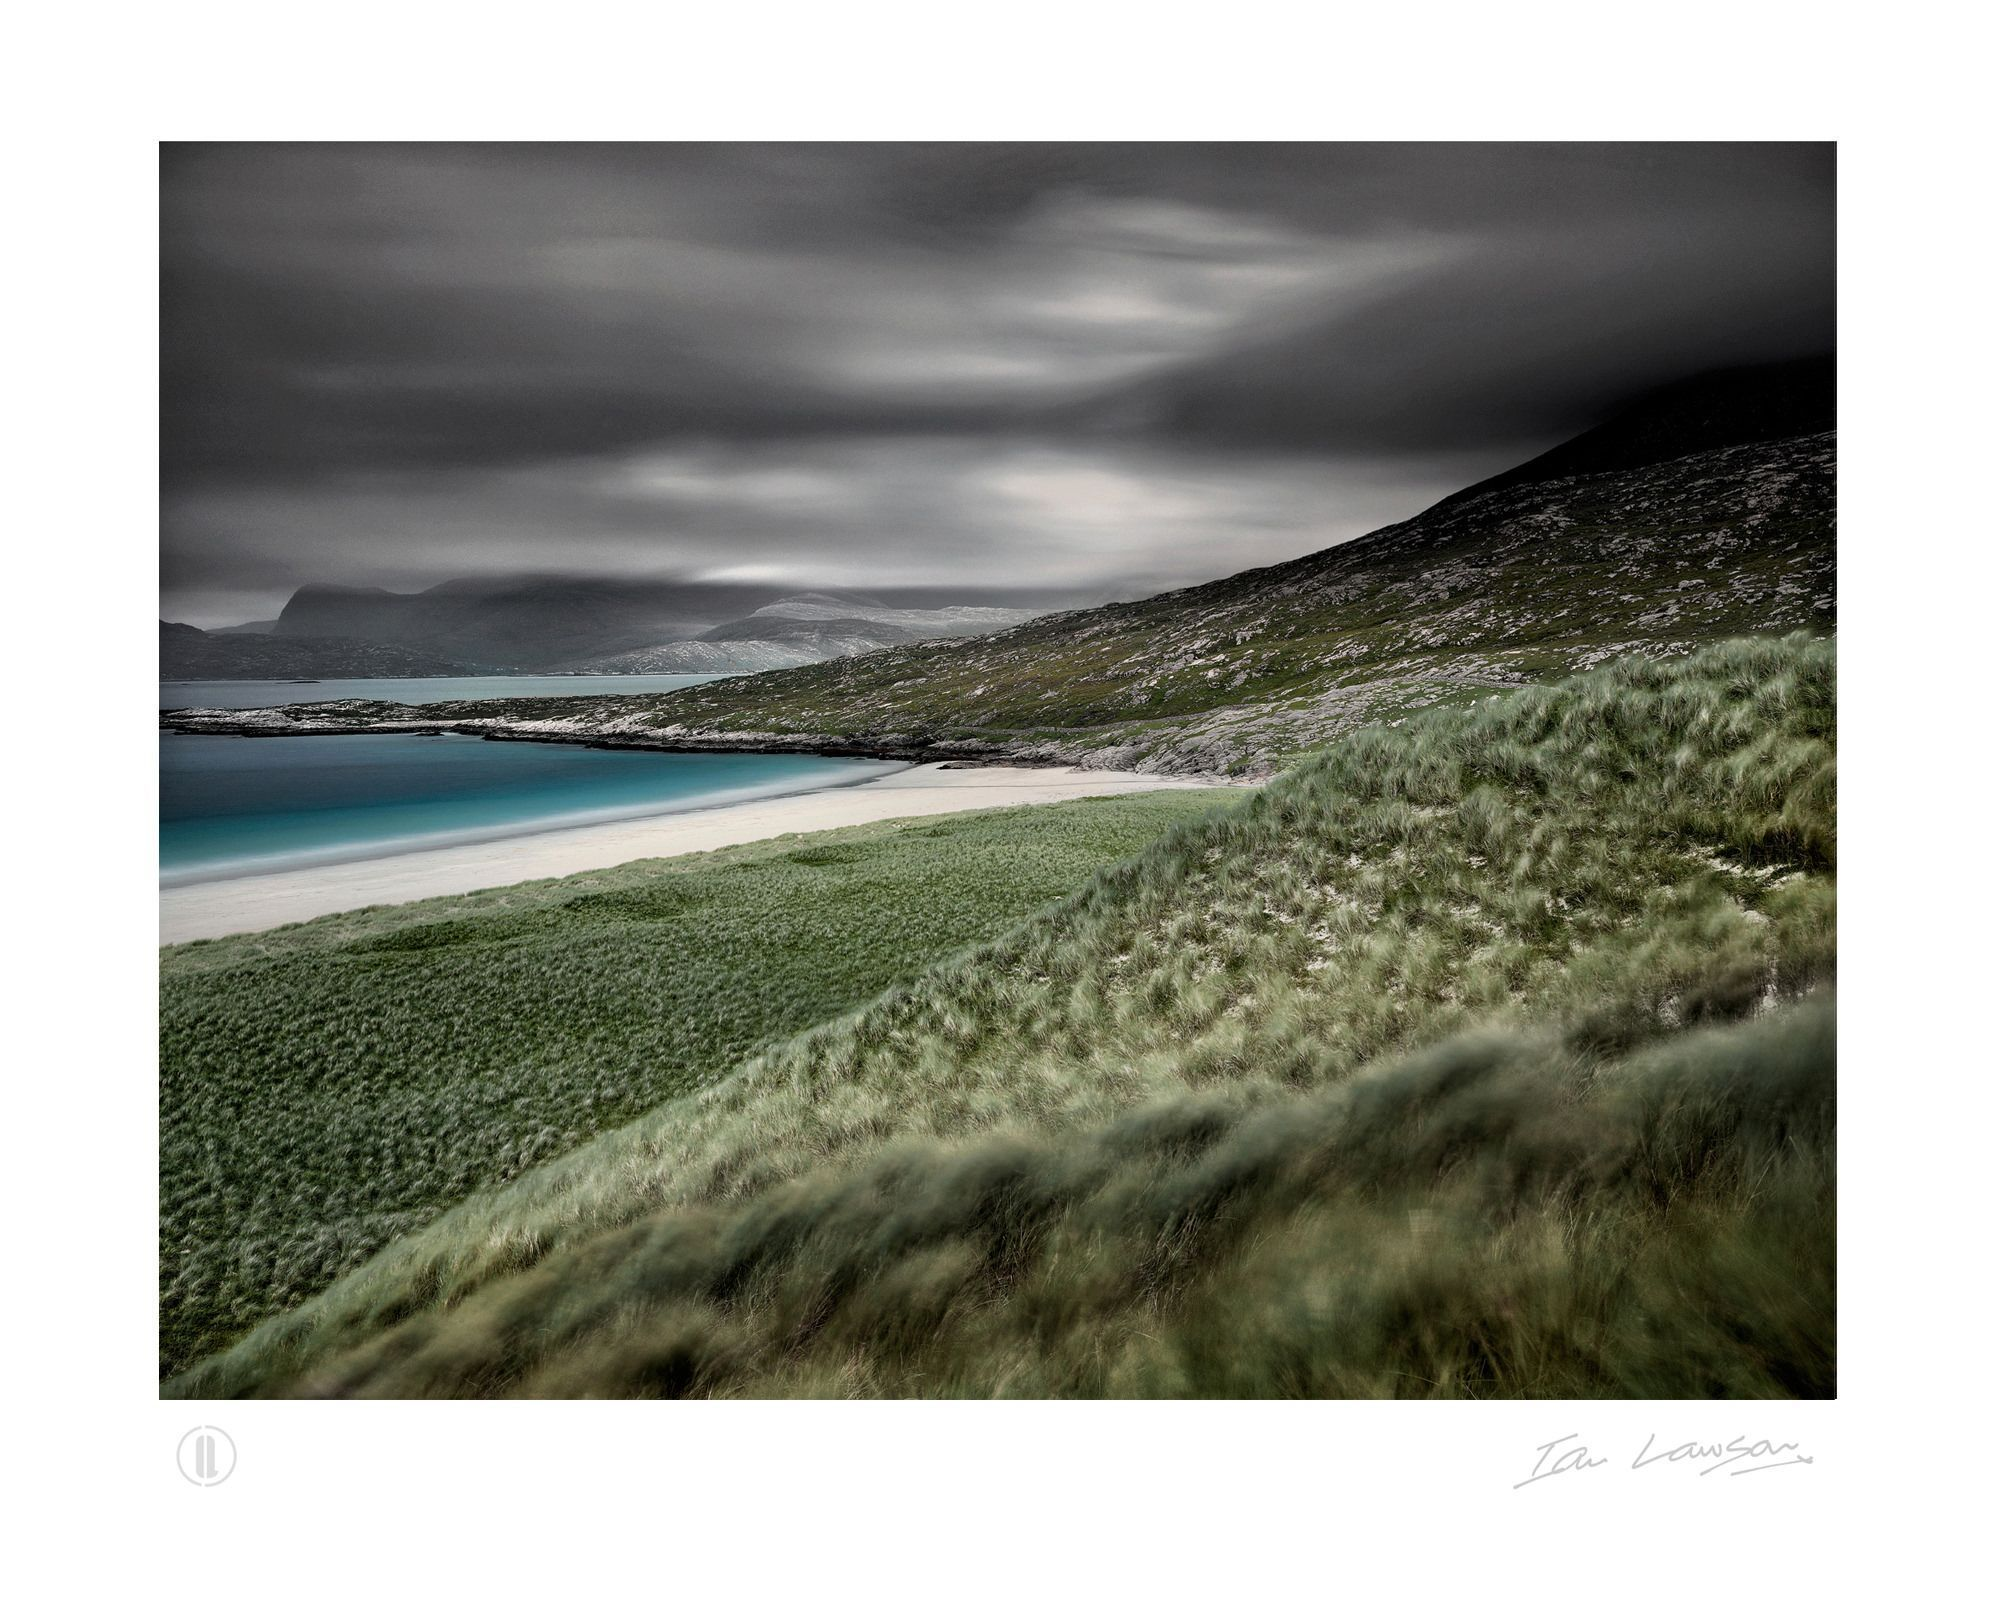 Ian Lawson | Art Prints | The Outer Hebrides #outerhebrides Ian Lawson | Art Prints | The Outer Hebrides #outerhebrides Ian Lawson | Art Prints | The Outer Hebrides #outerhebrides Ian Lawson | Art Prints | The Outer Hebrides #outerhebrides Ian Lawson | Art Prints | The Outer Hebrides #outerhebrides Ian Lawson | Art Prints | The Outer Hebrides #outerhebrides Ian Lawson | Art Prints | The Outer Hebrides #outerhebrides Ian Lawson | Art Prints | The Outer Hebrides #outerhebrides